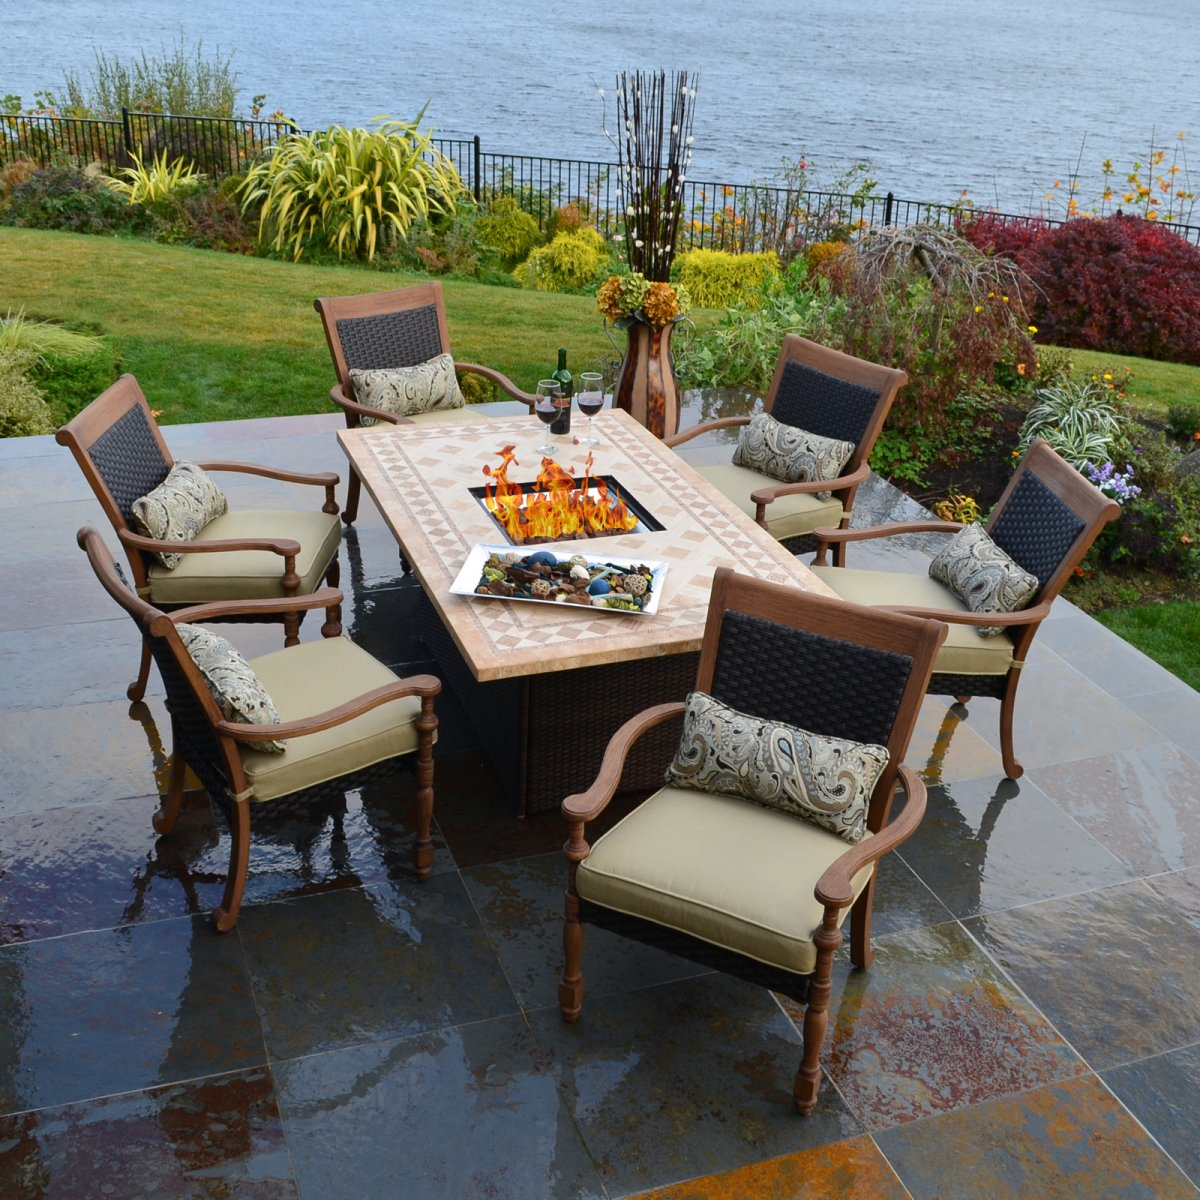 Patio dining table with fire pit fireplace design ideas for Used patio dining sets